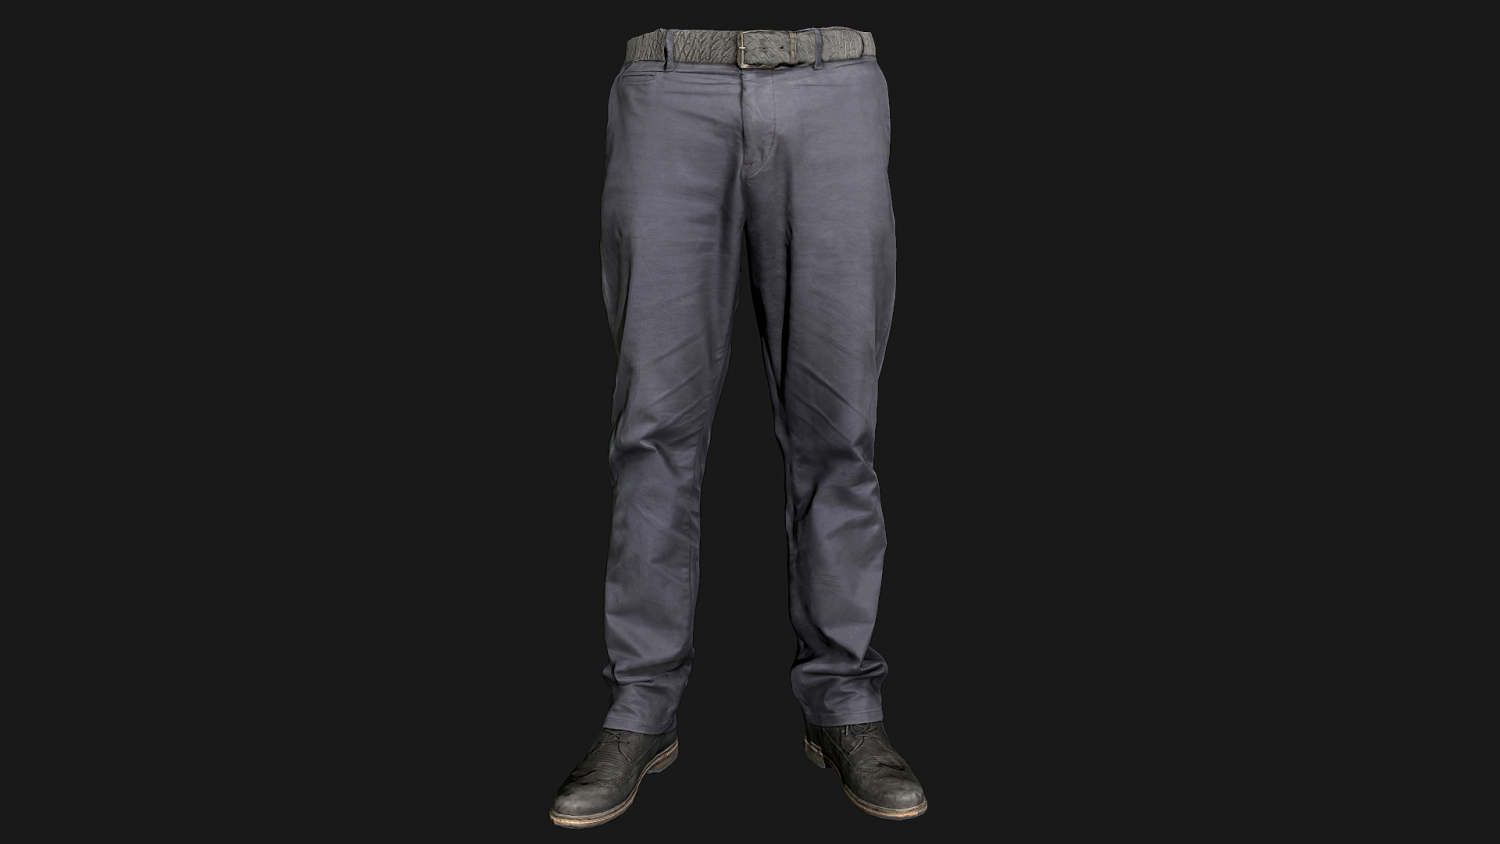 Male outfit set Pants and Shoes low poly 3D Model in Clothing 3DExport